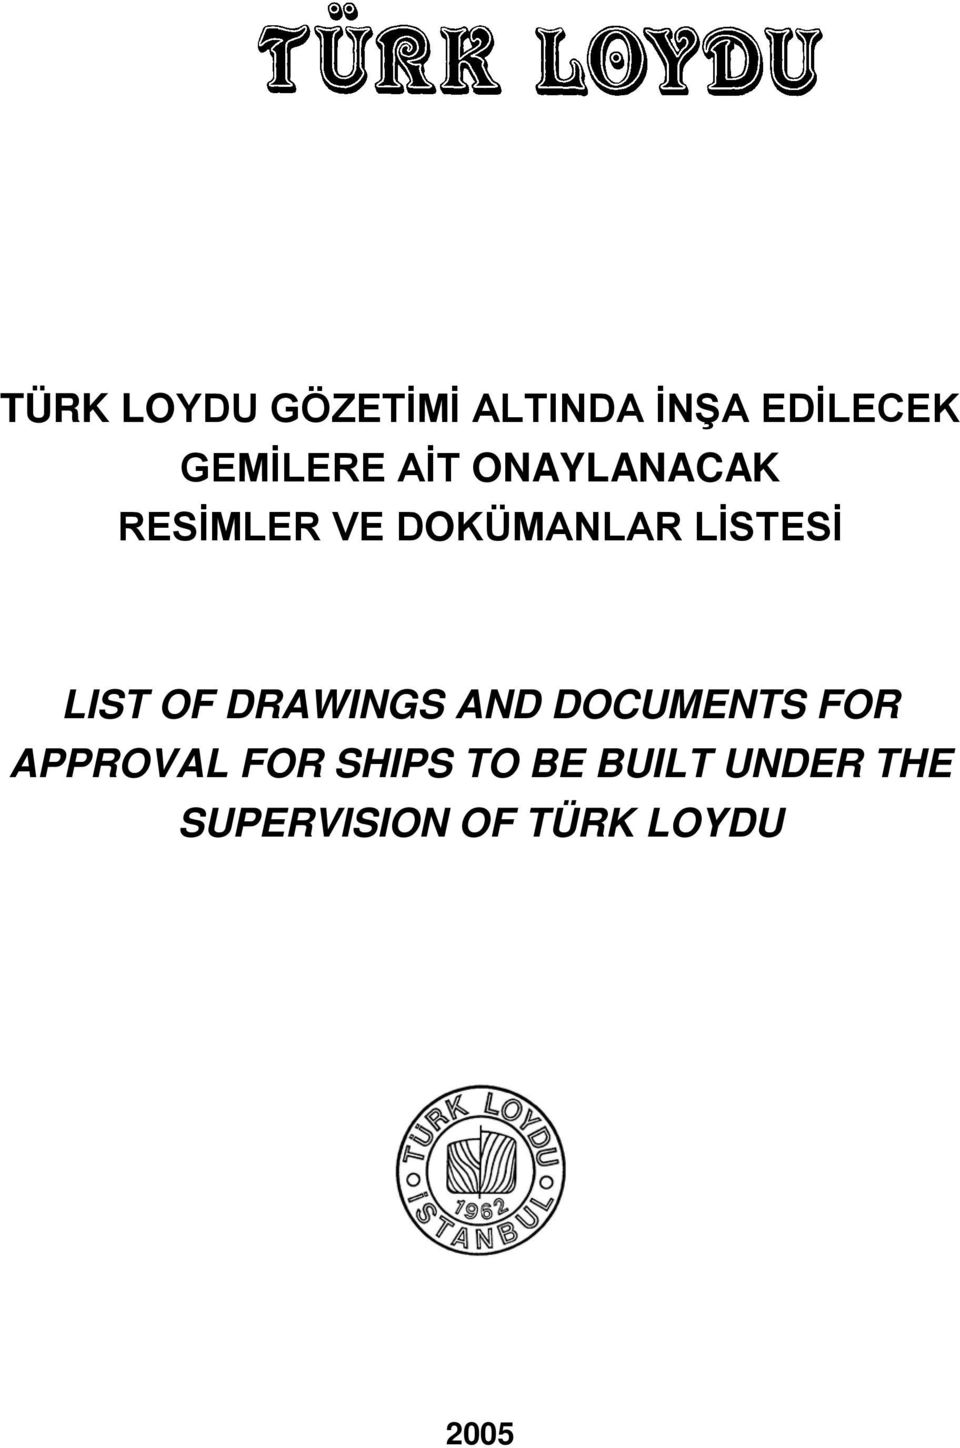 LIST OF DRAWINGS AND DOCUMENTS FOR APPROVAL FOR